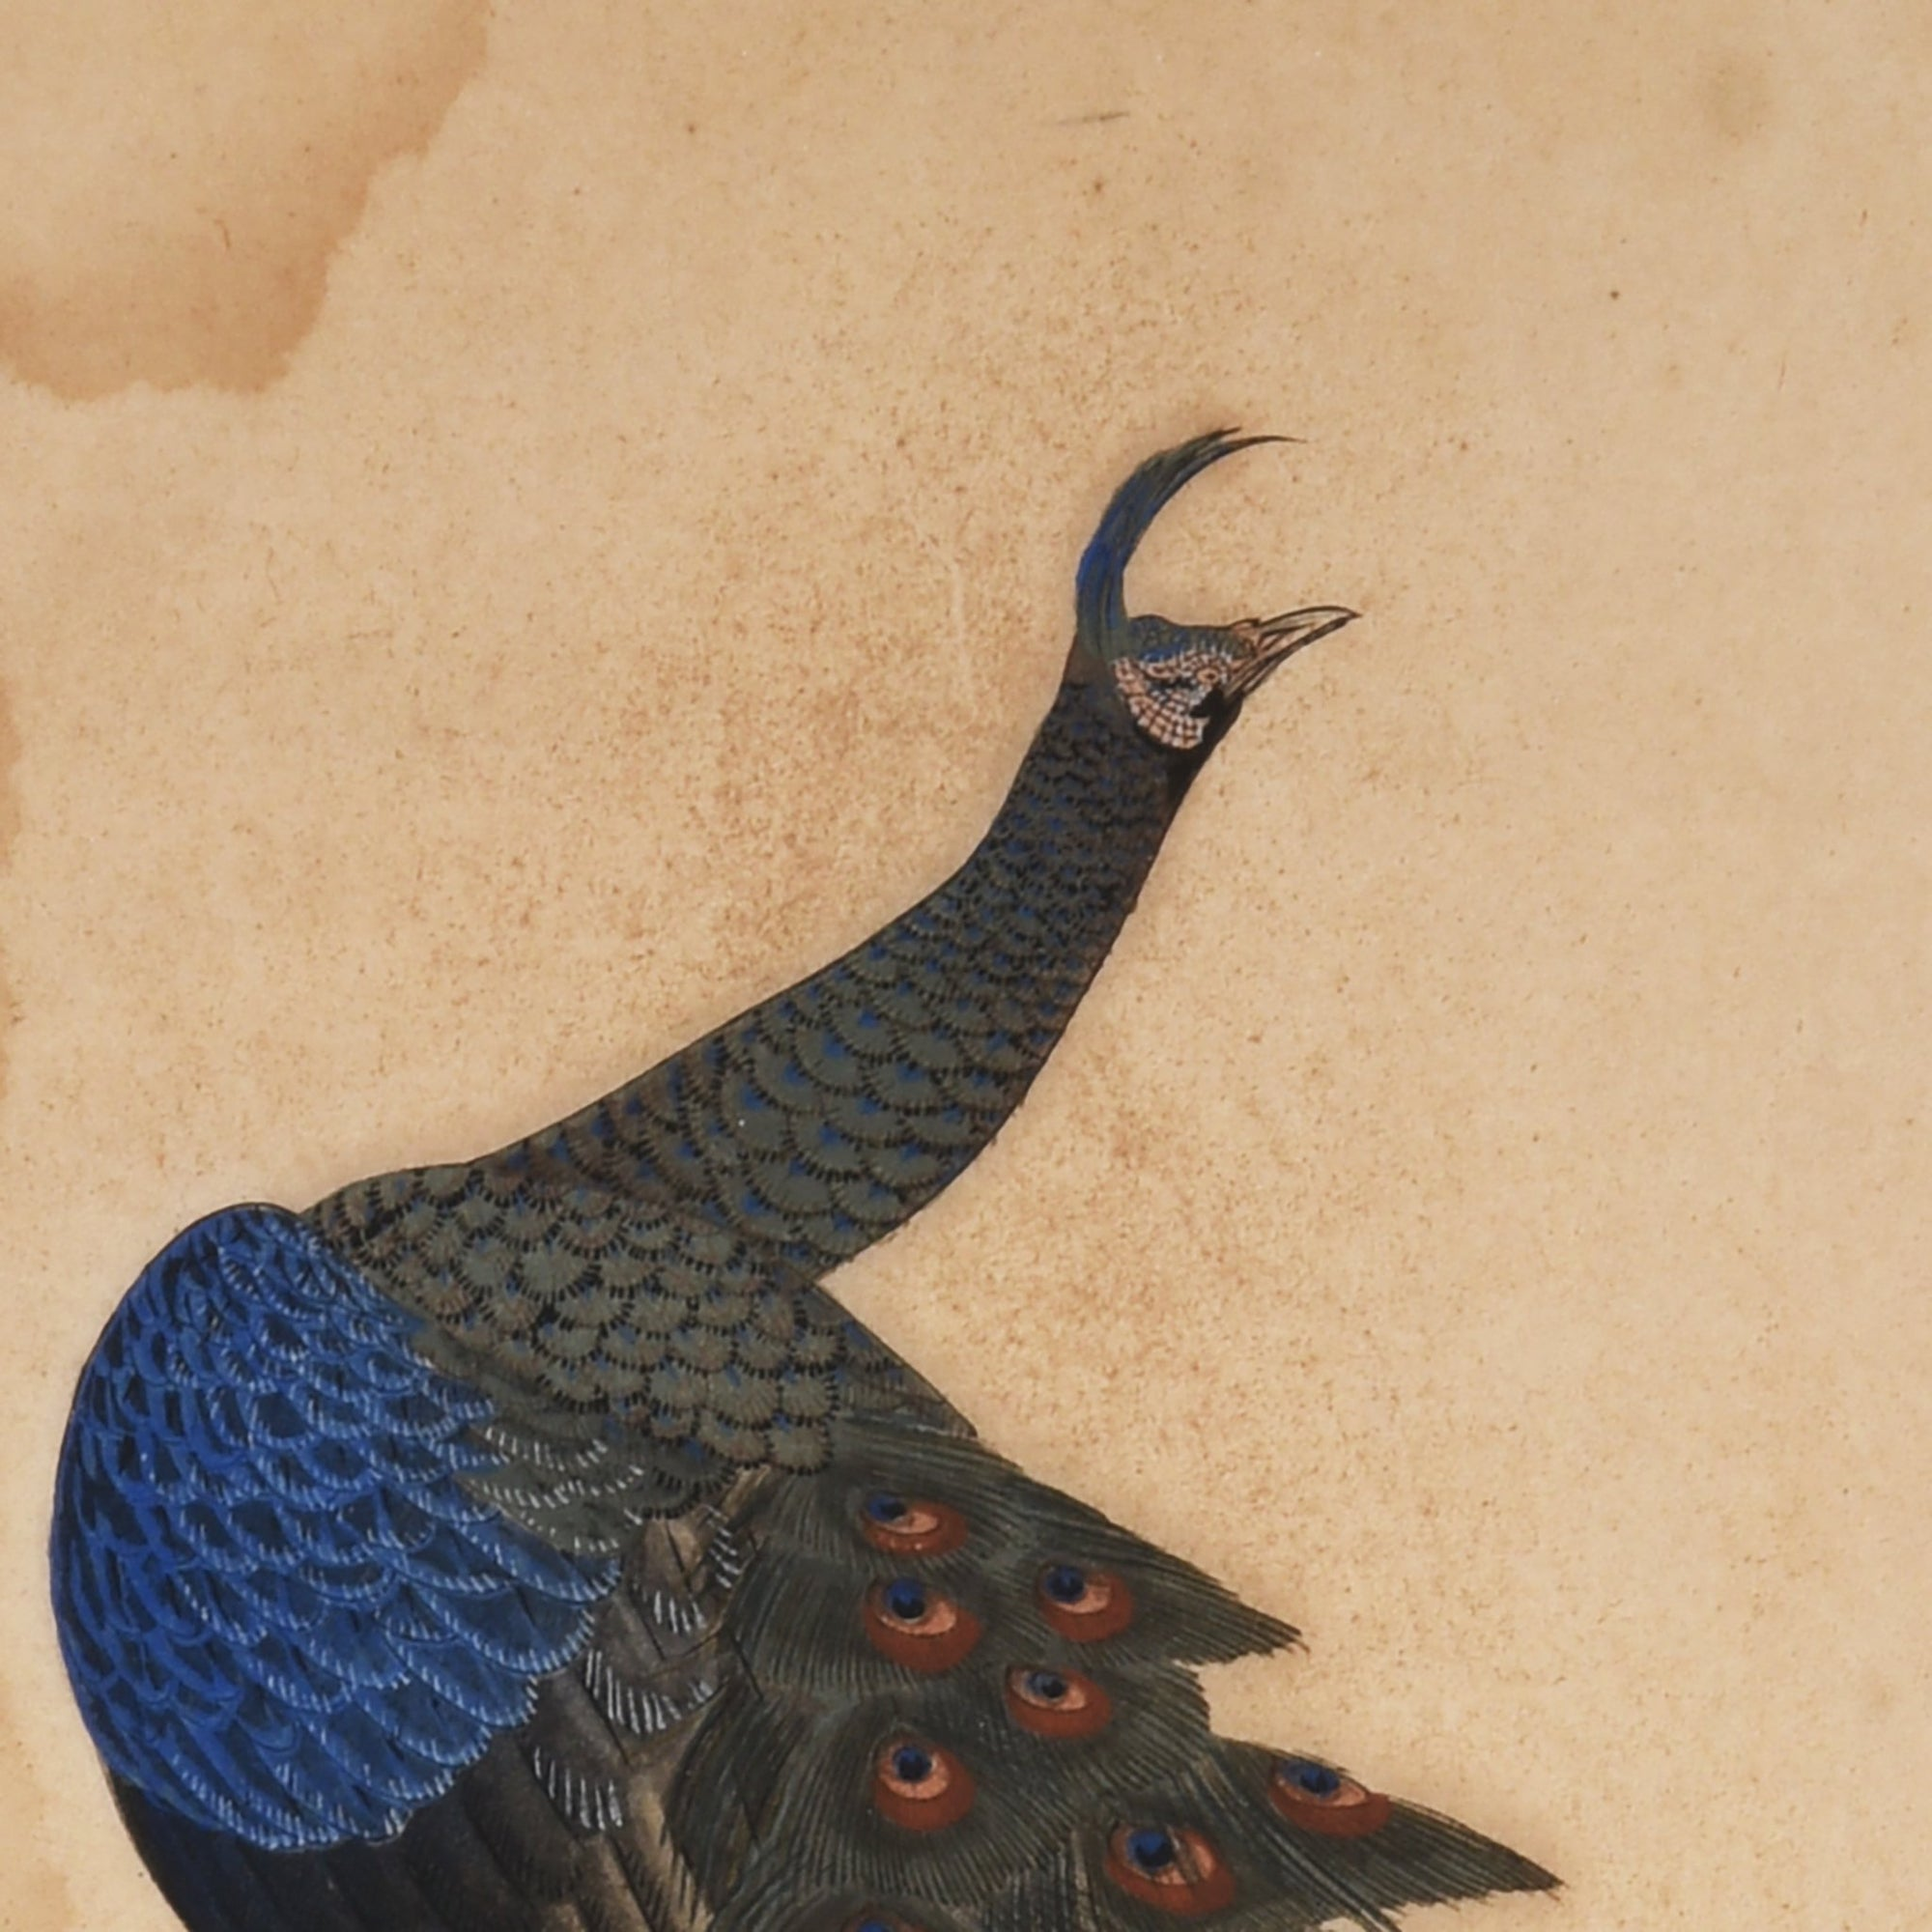 Japanese Painting of Peacock - 36 x 1.5 x 55 cms - M241